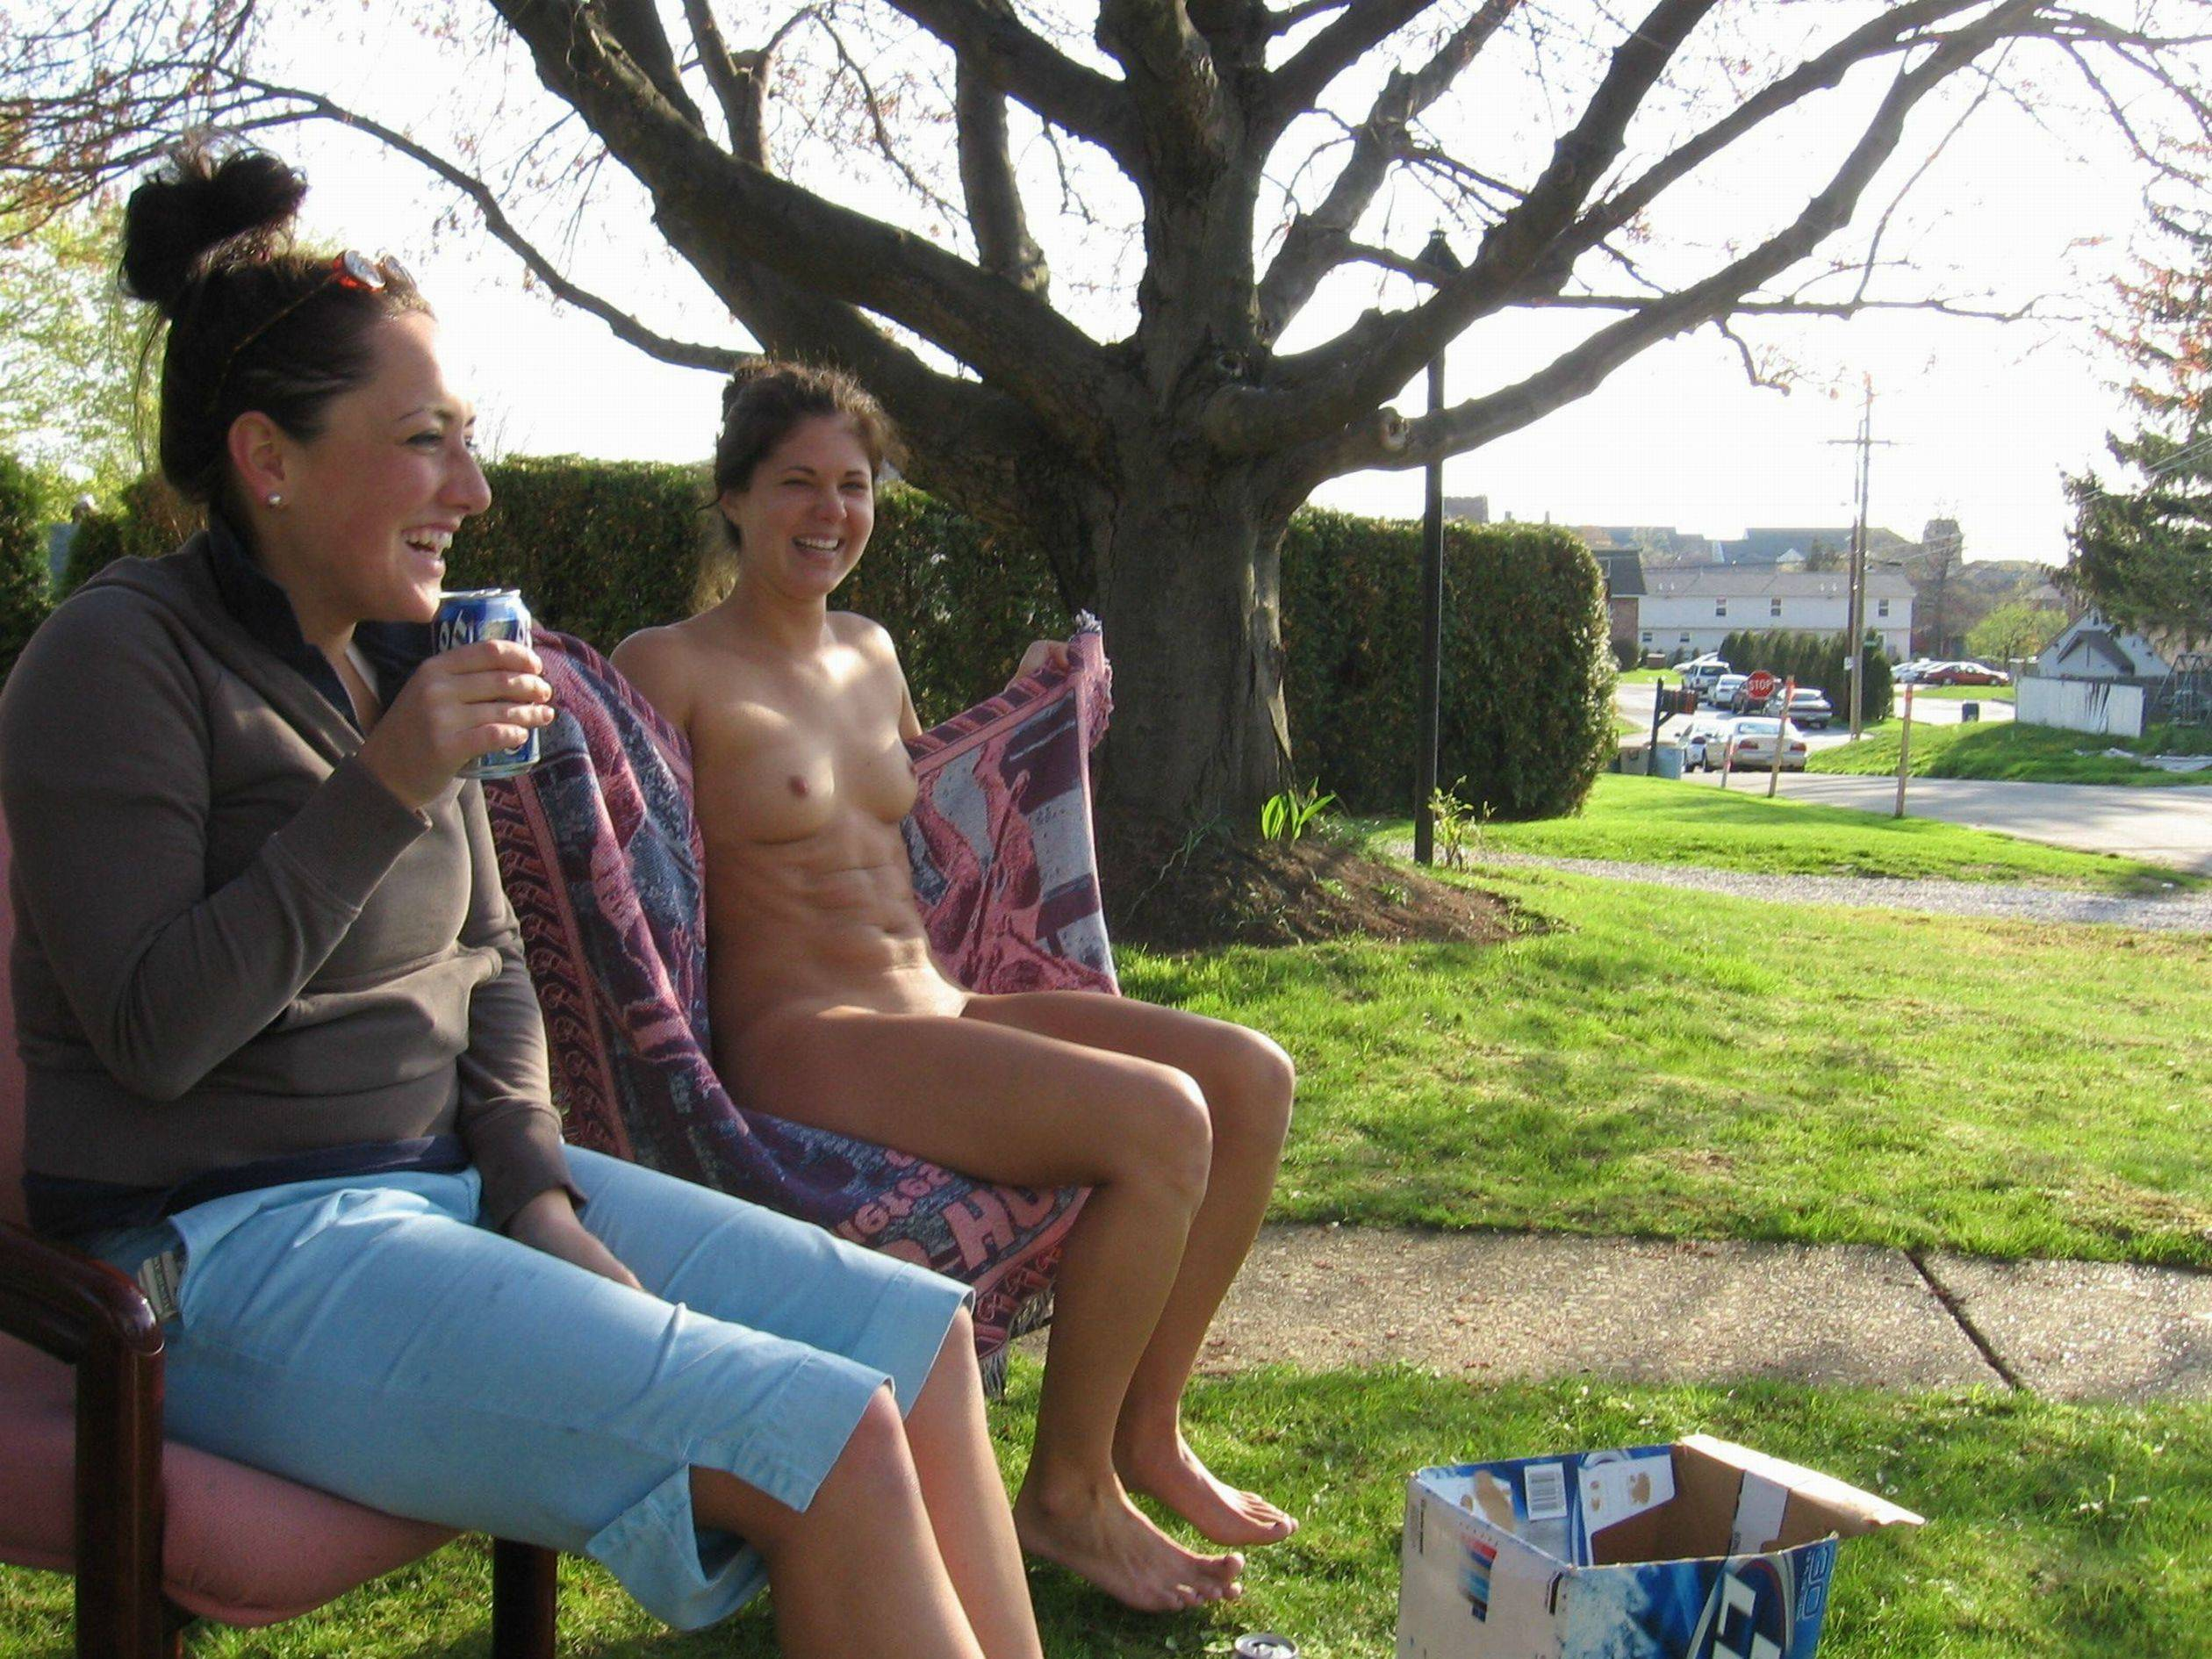 Naked embarrassed girl public